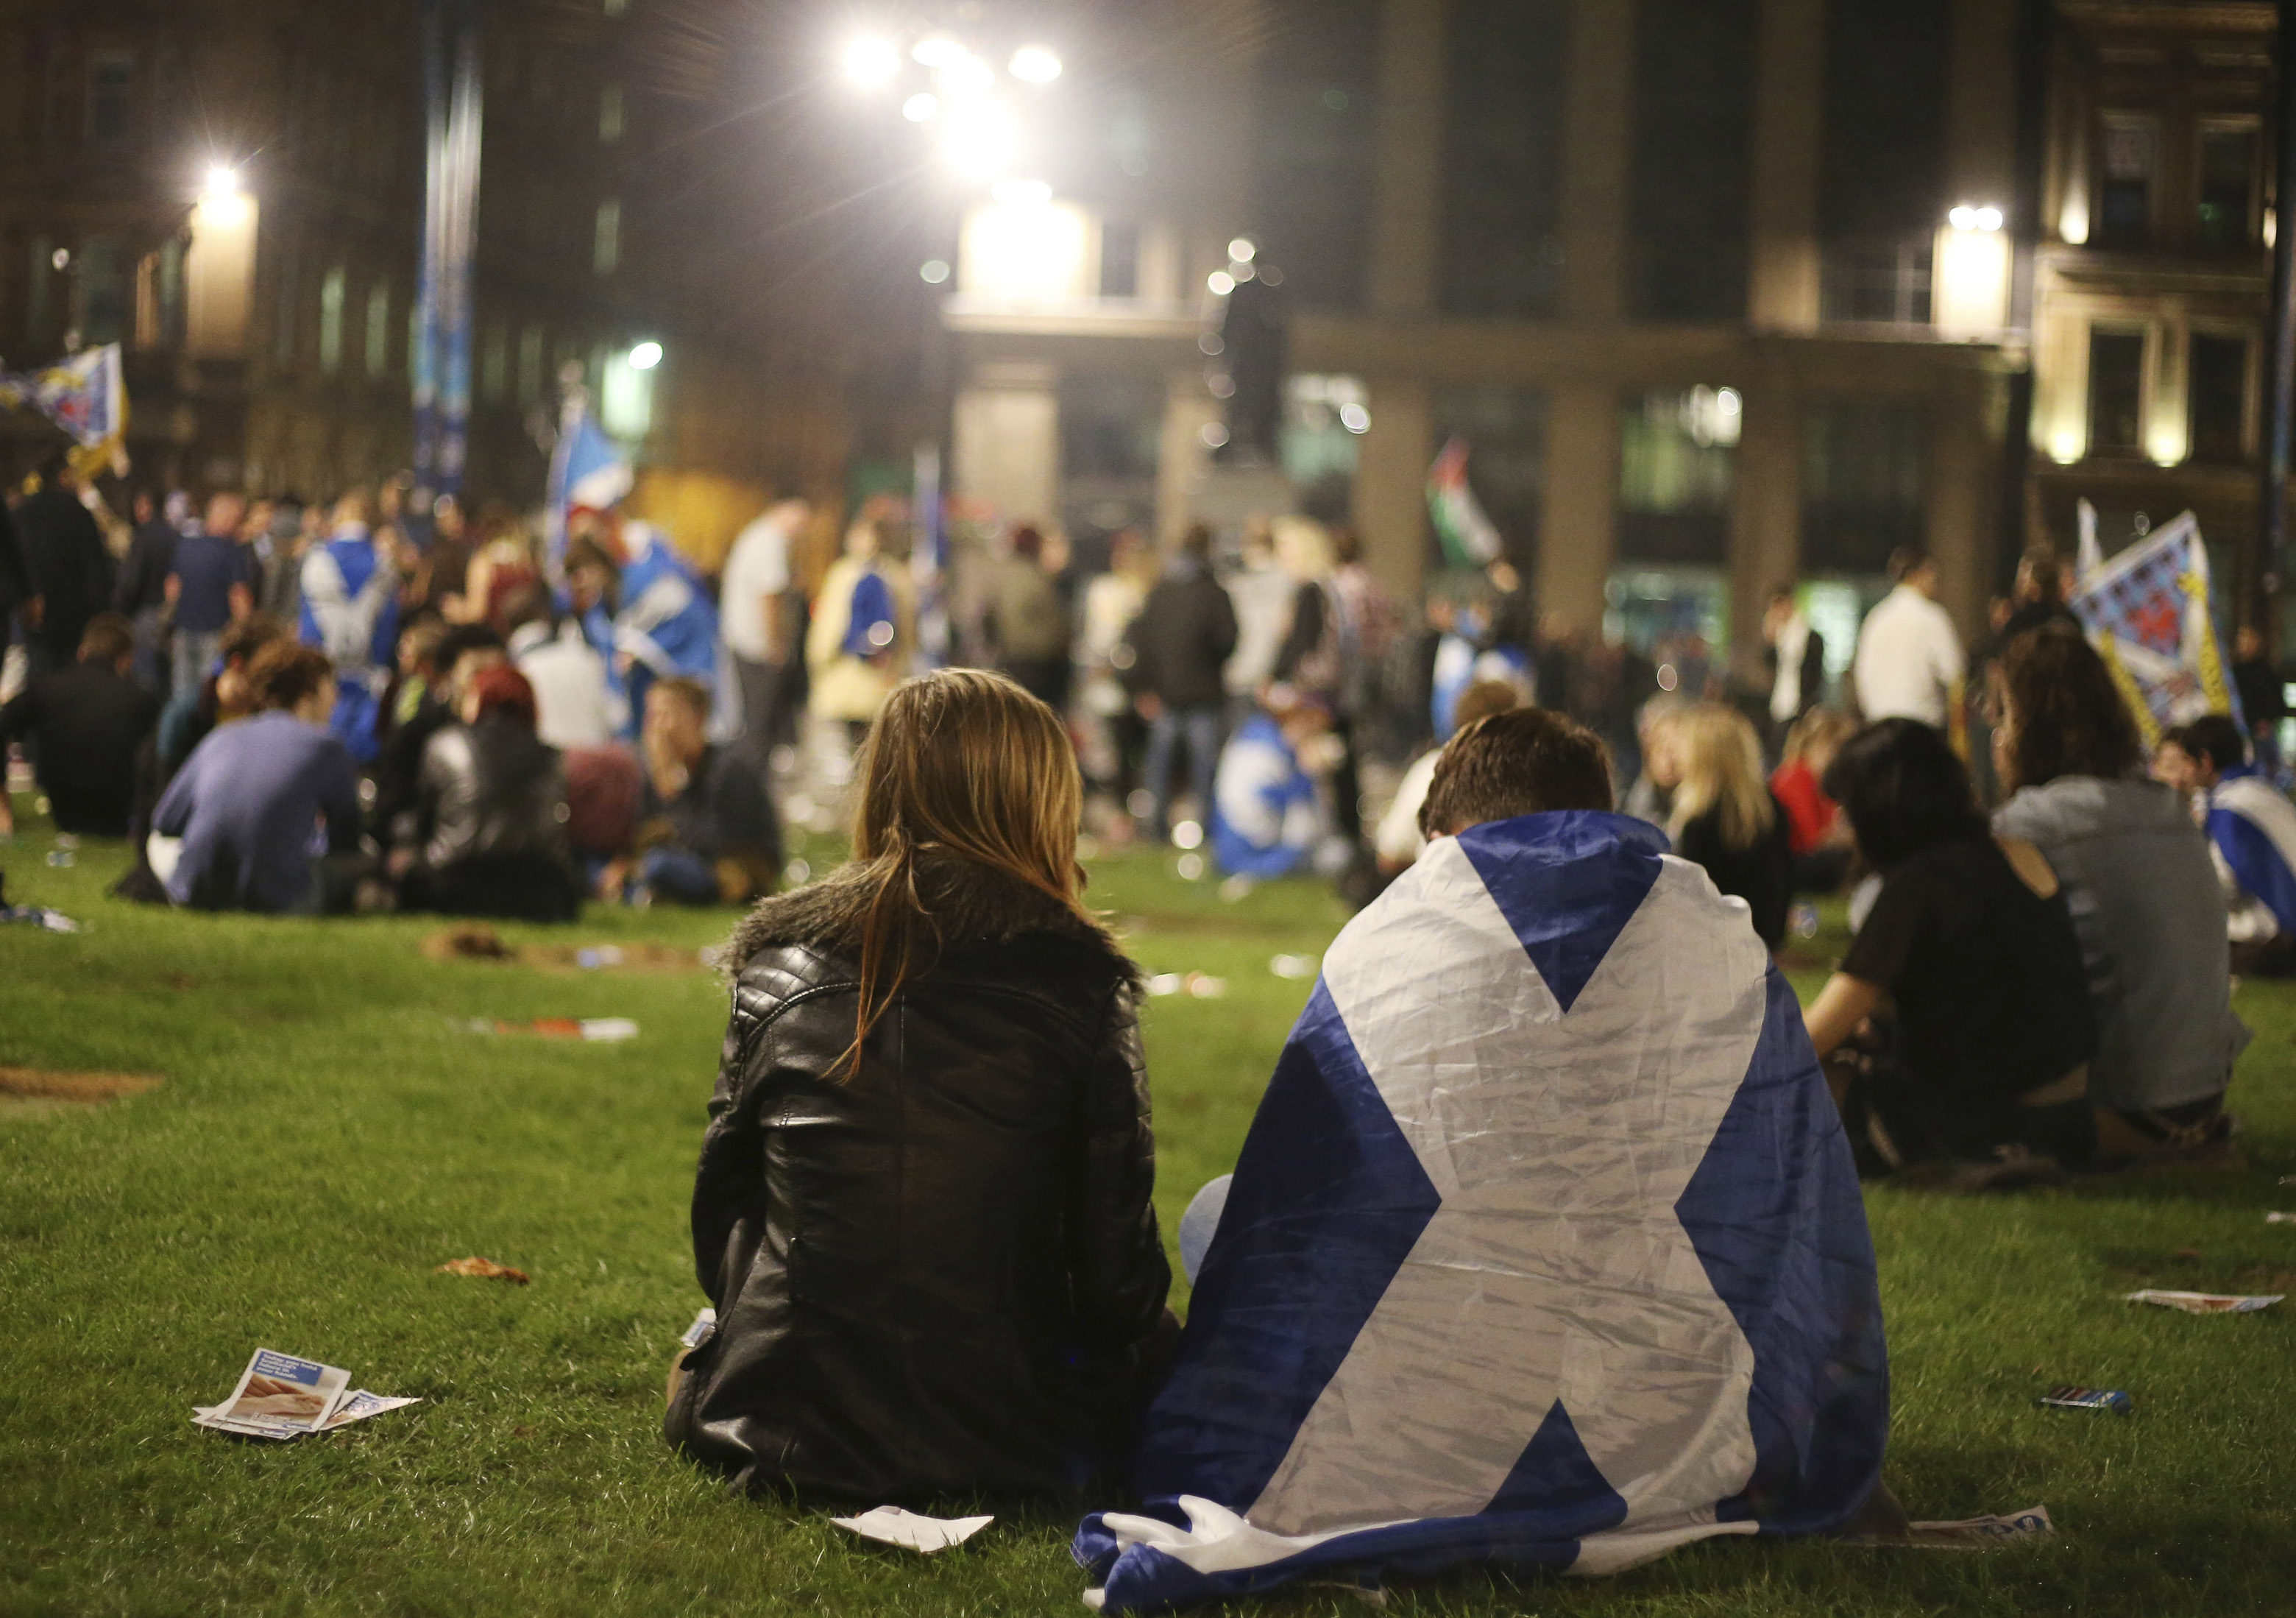 Yes campaign supporters in the Scottish referendum gather in George Square in Glasgow, Scotland, on Sept. 19, 2014